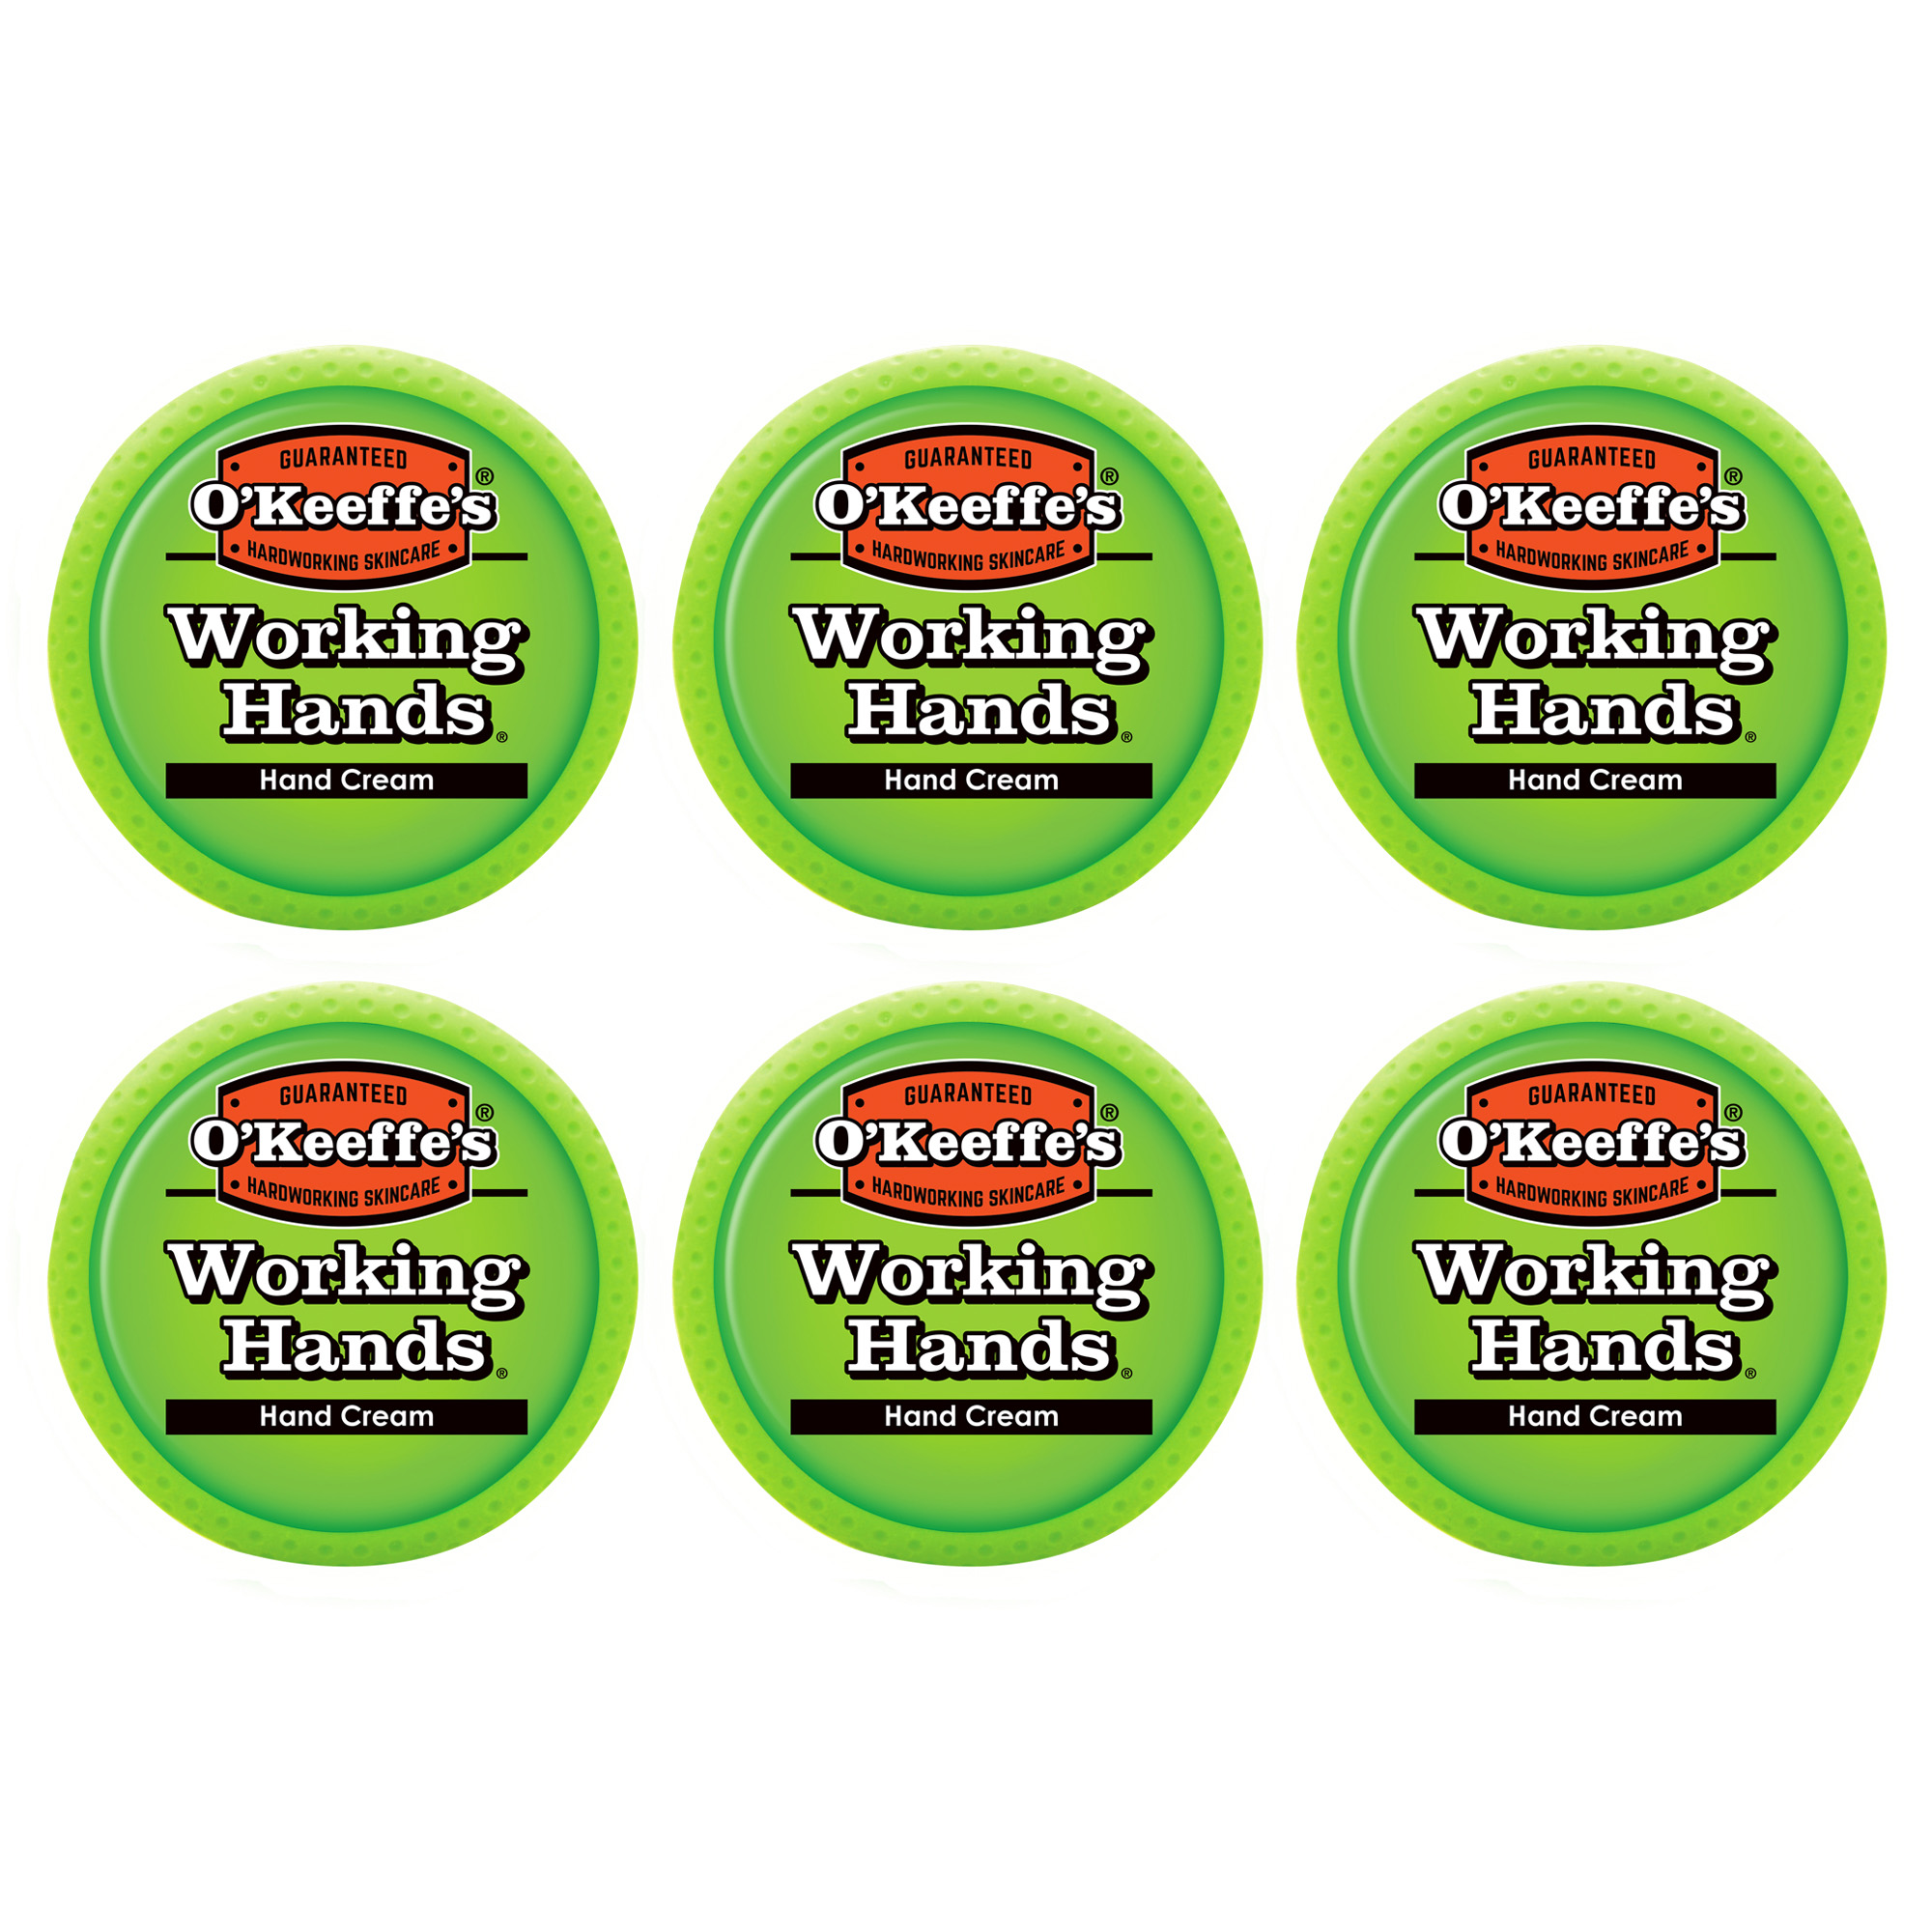 O'Keeffe's Working Hands Jar, 2.7 oz. (6 Pack)